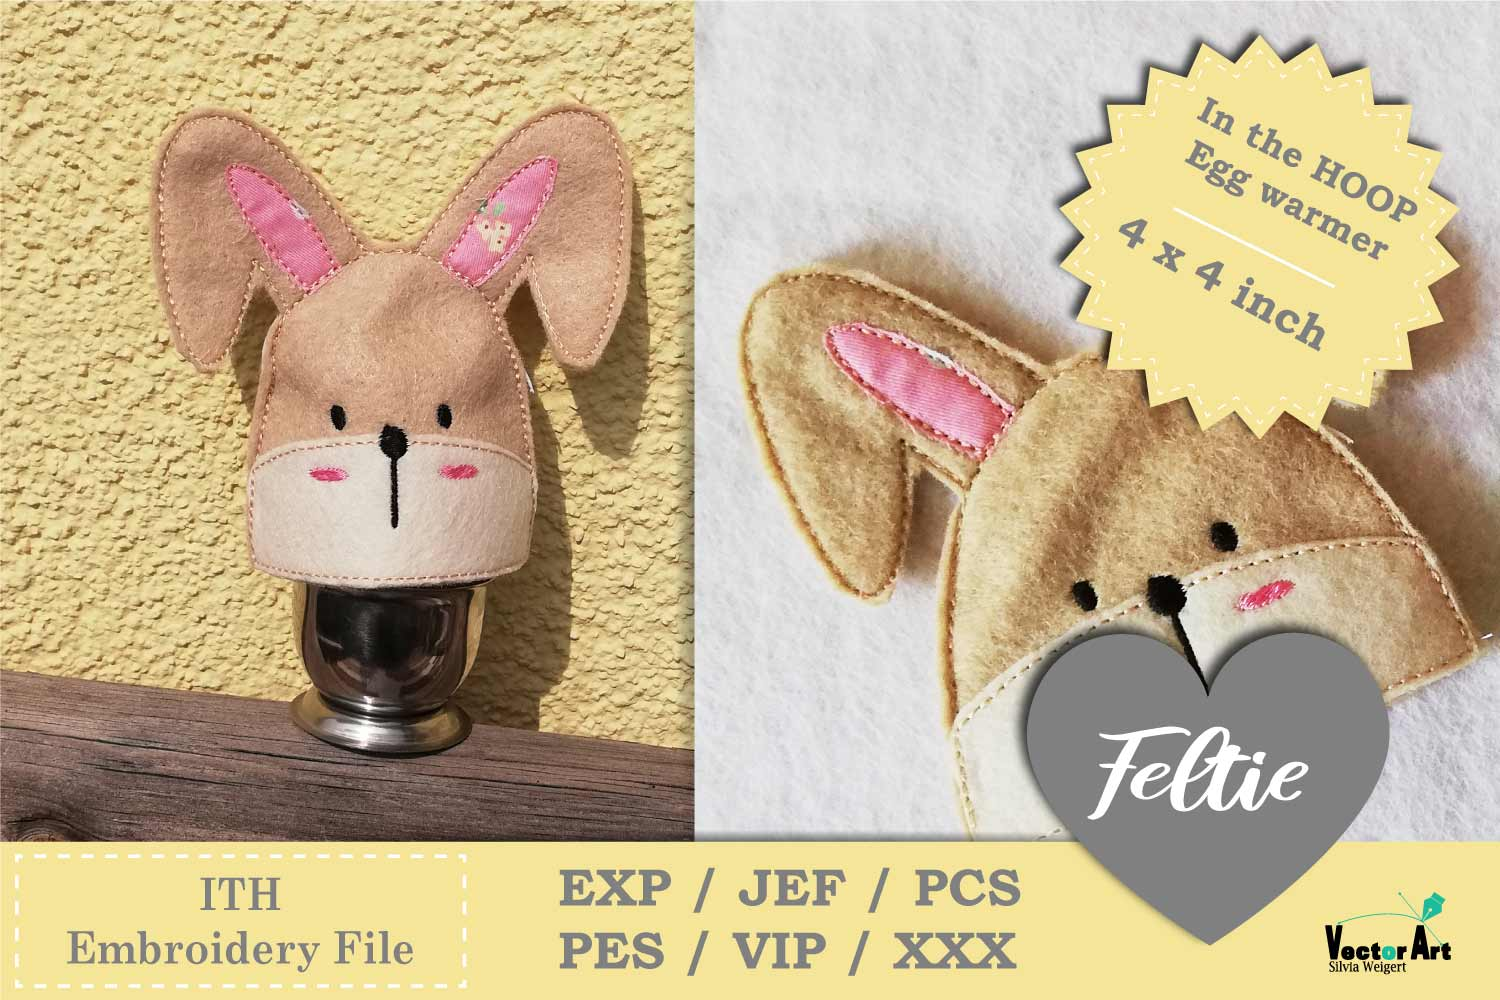 ITH - Feltie Bunny - Egg Warmer - Embroidery File example image 1